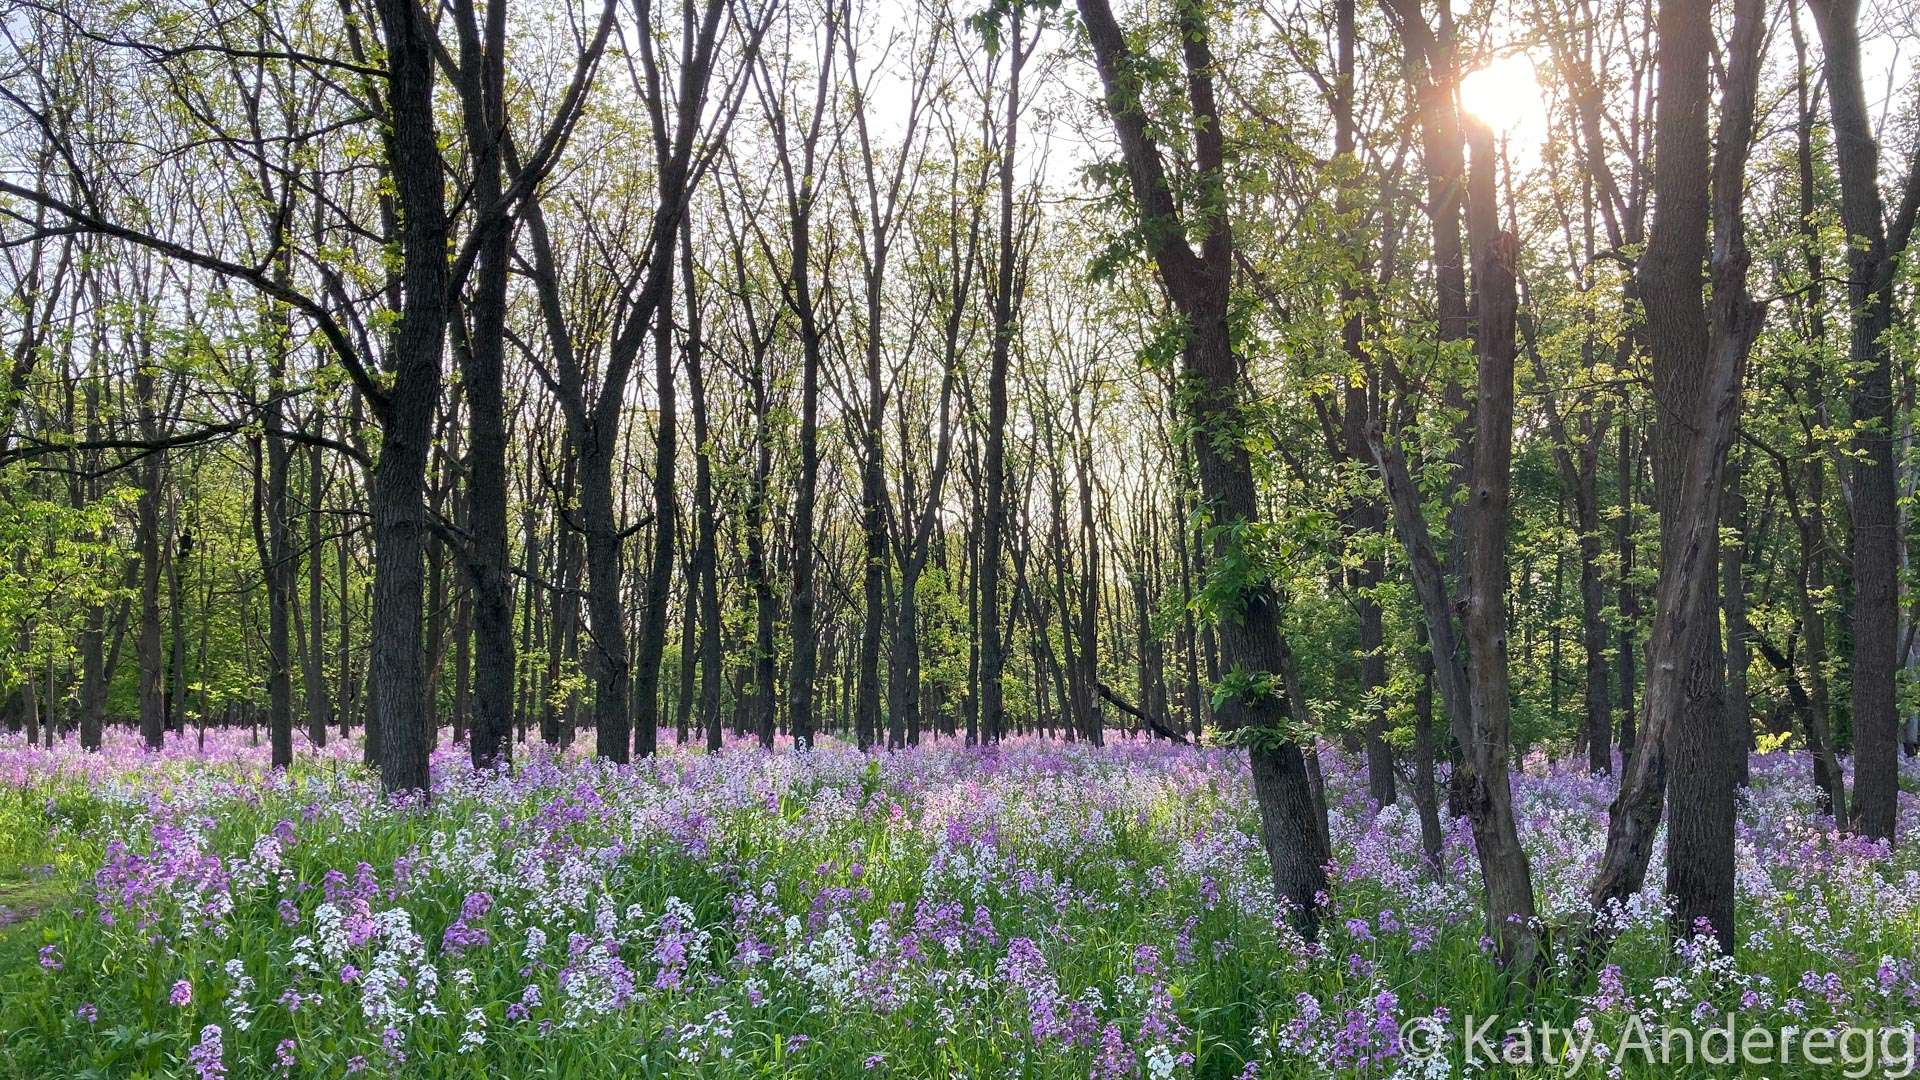 Wildflowers carpet the forest floor in the spring